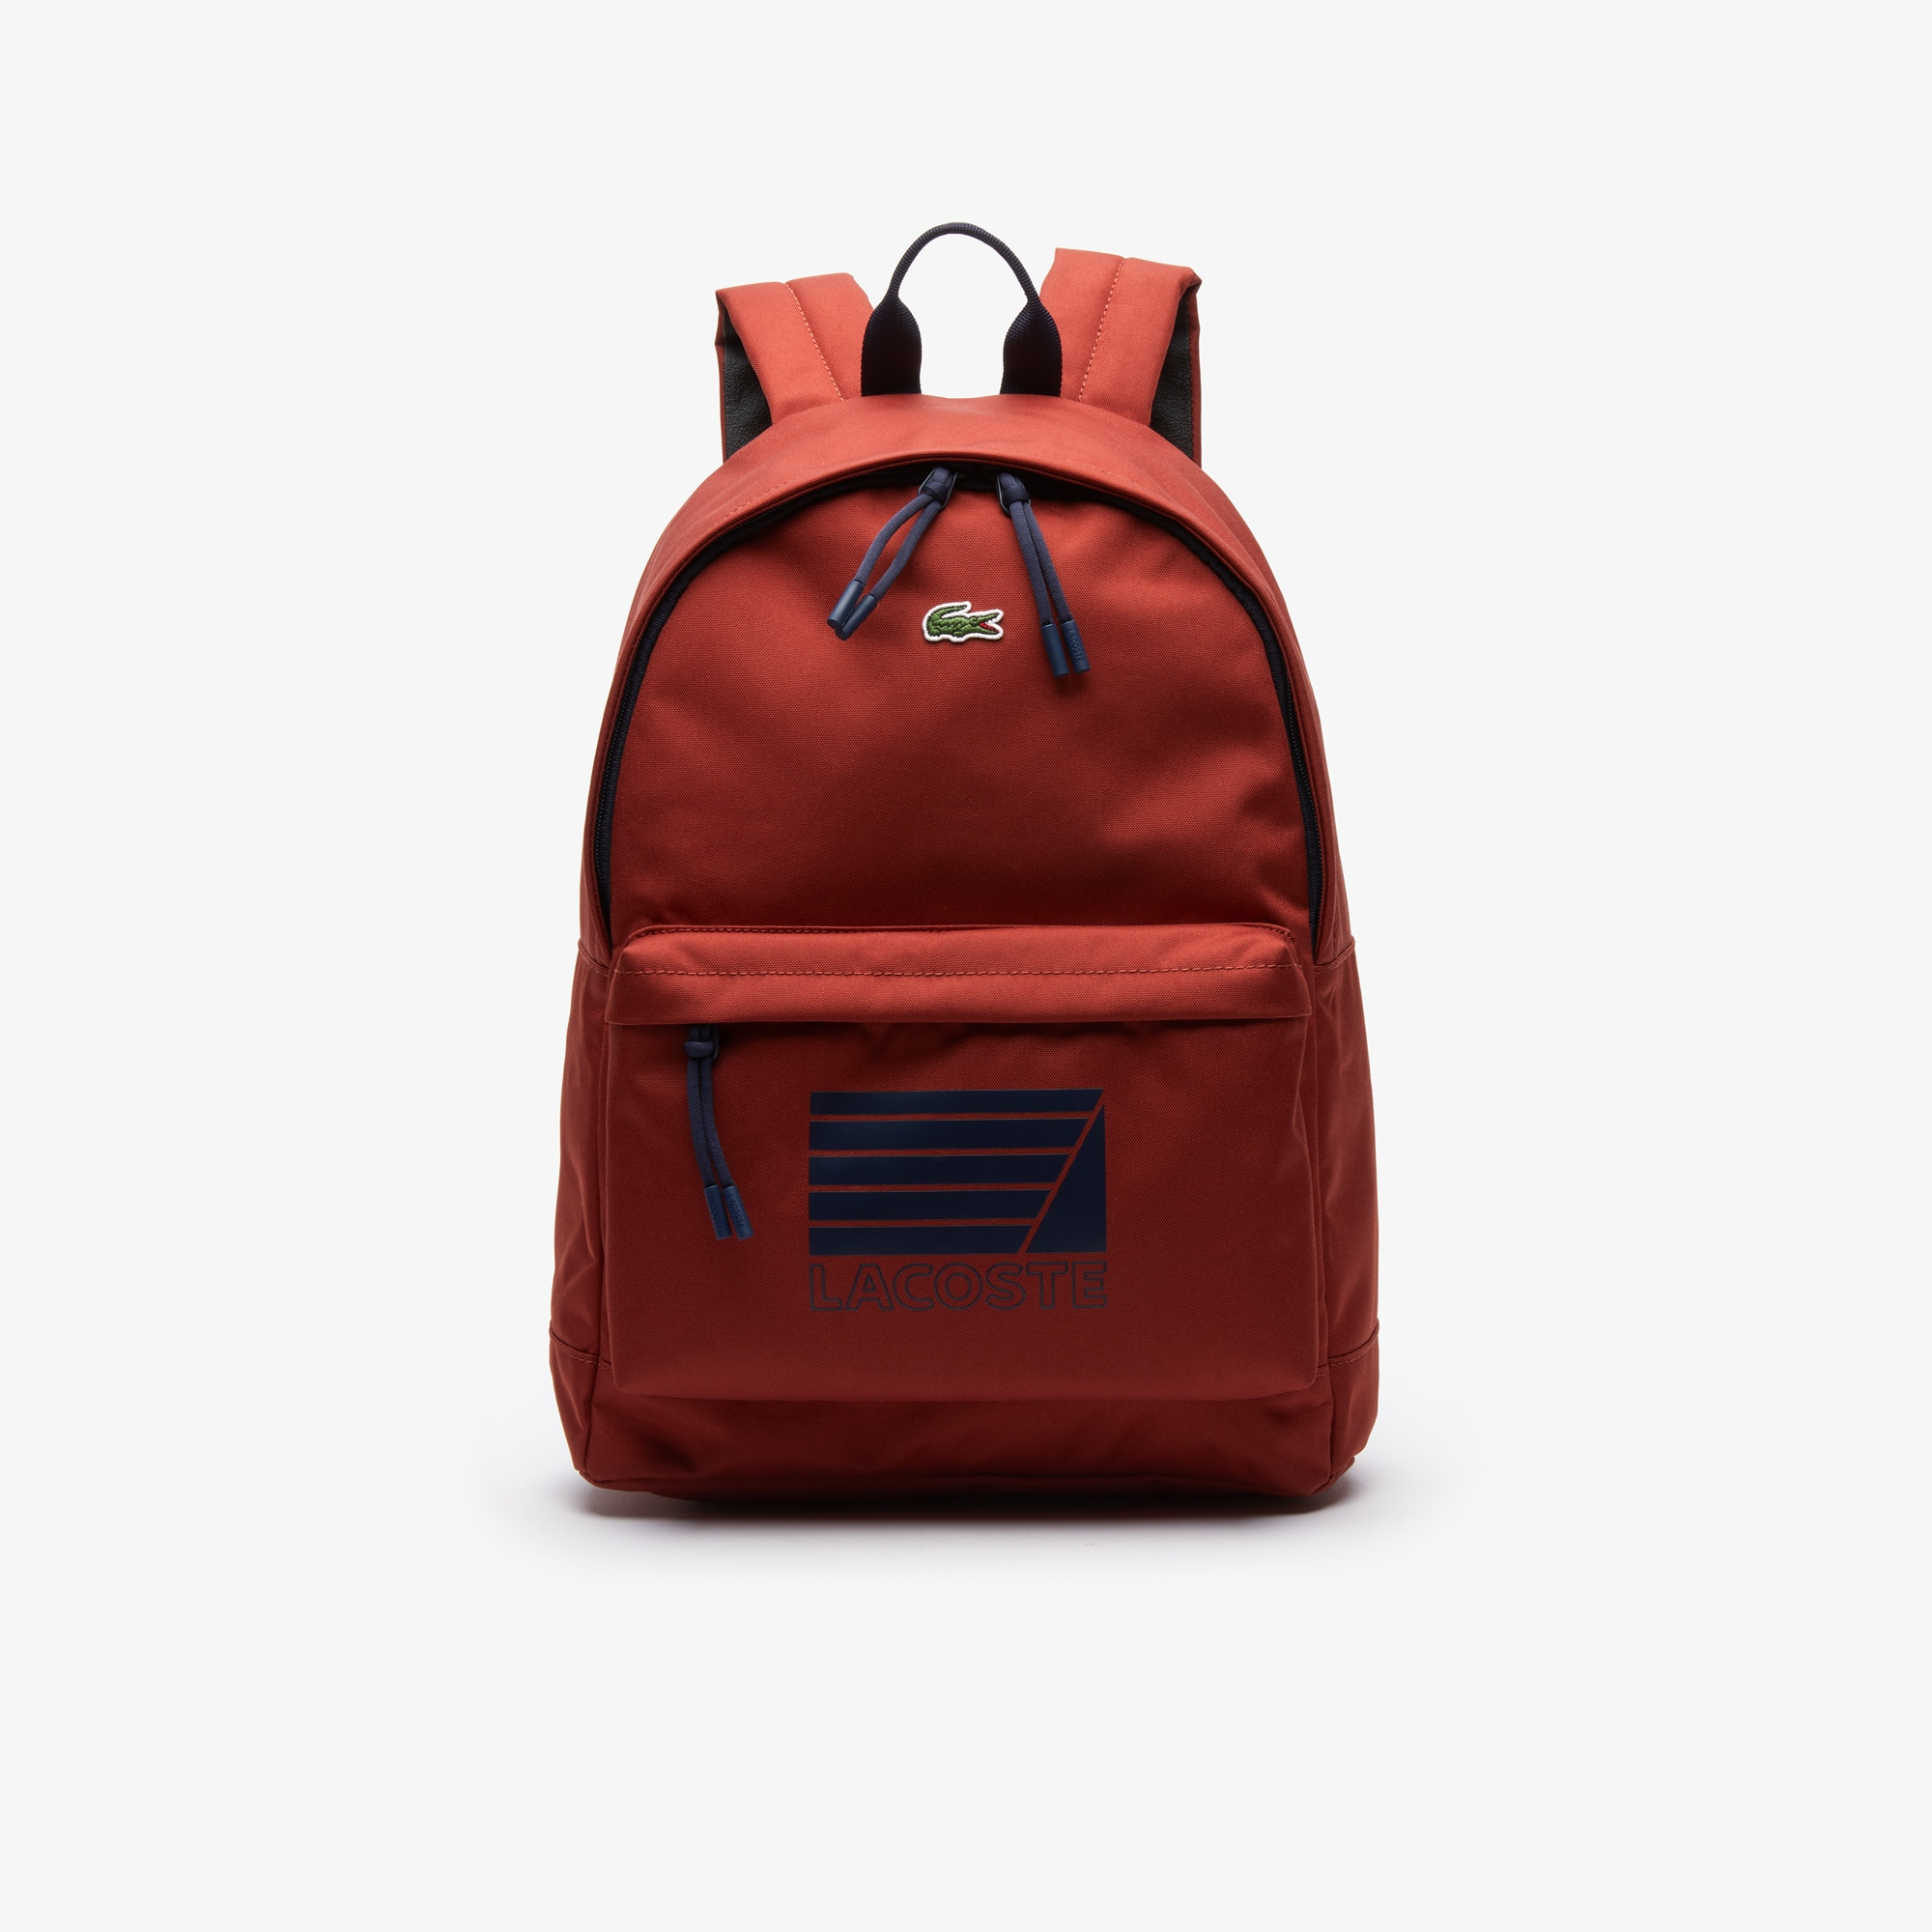 Men's Neocroc Nautical Canvas Backpack